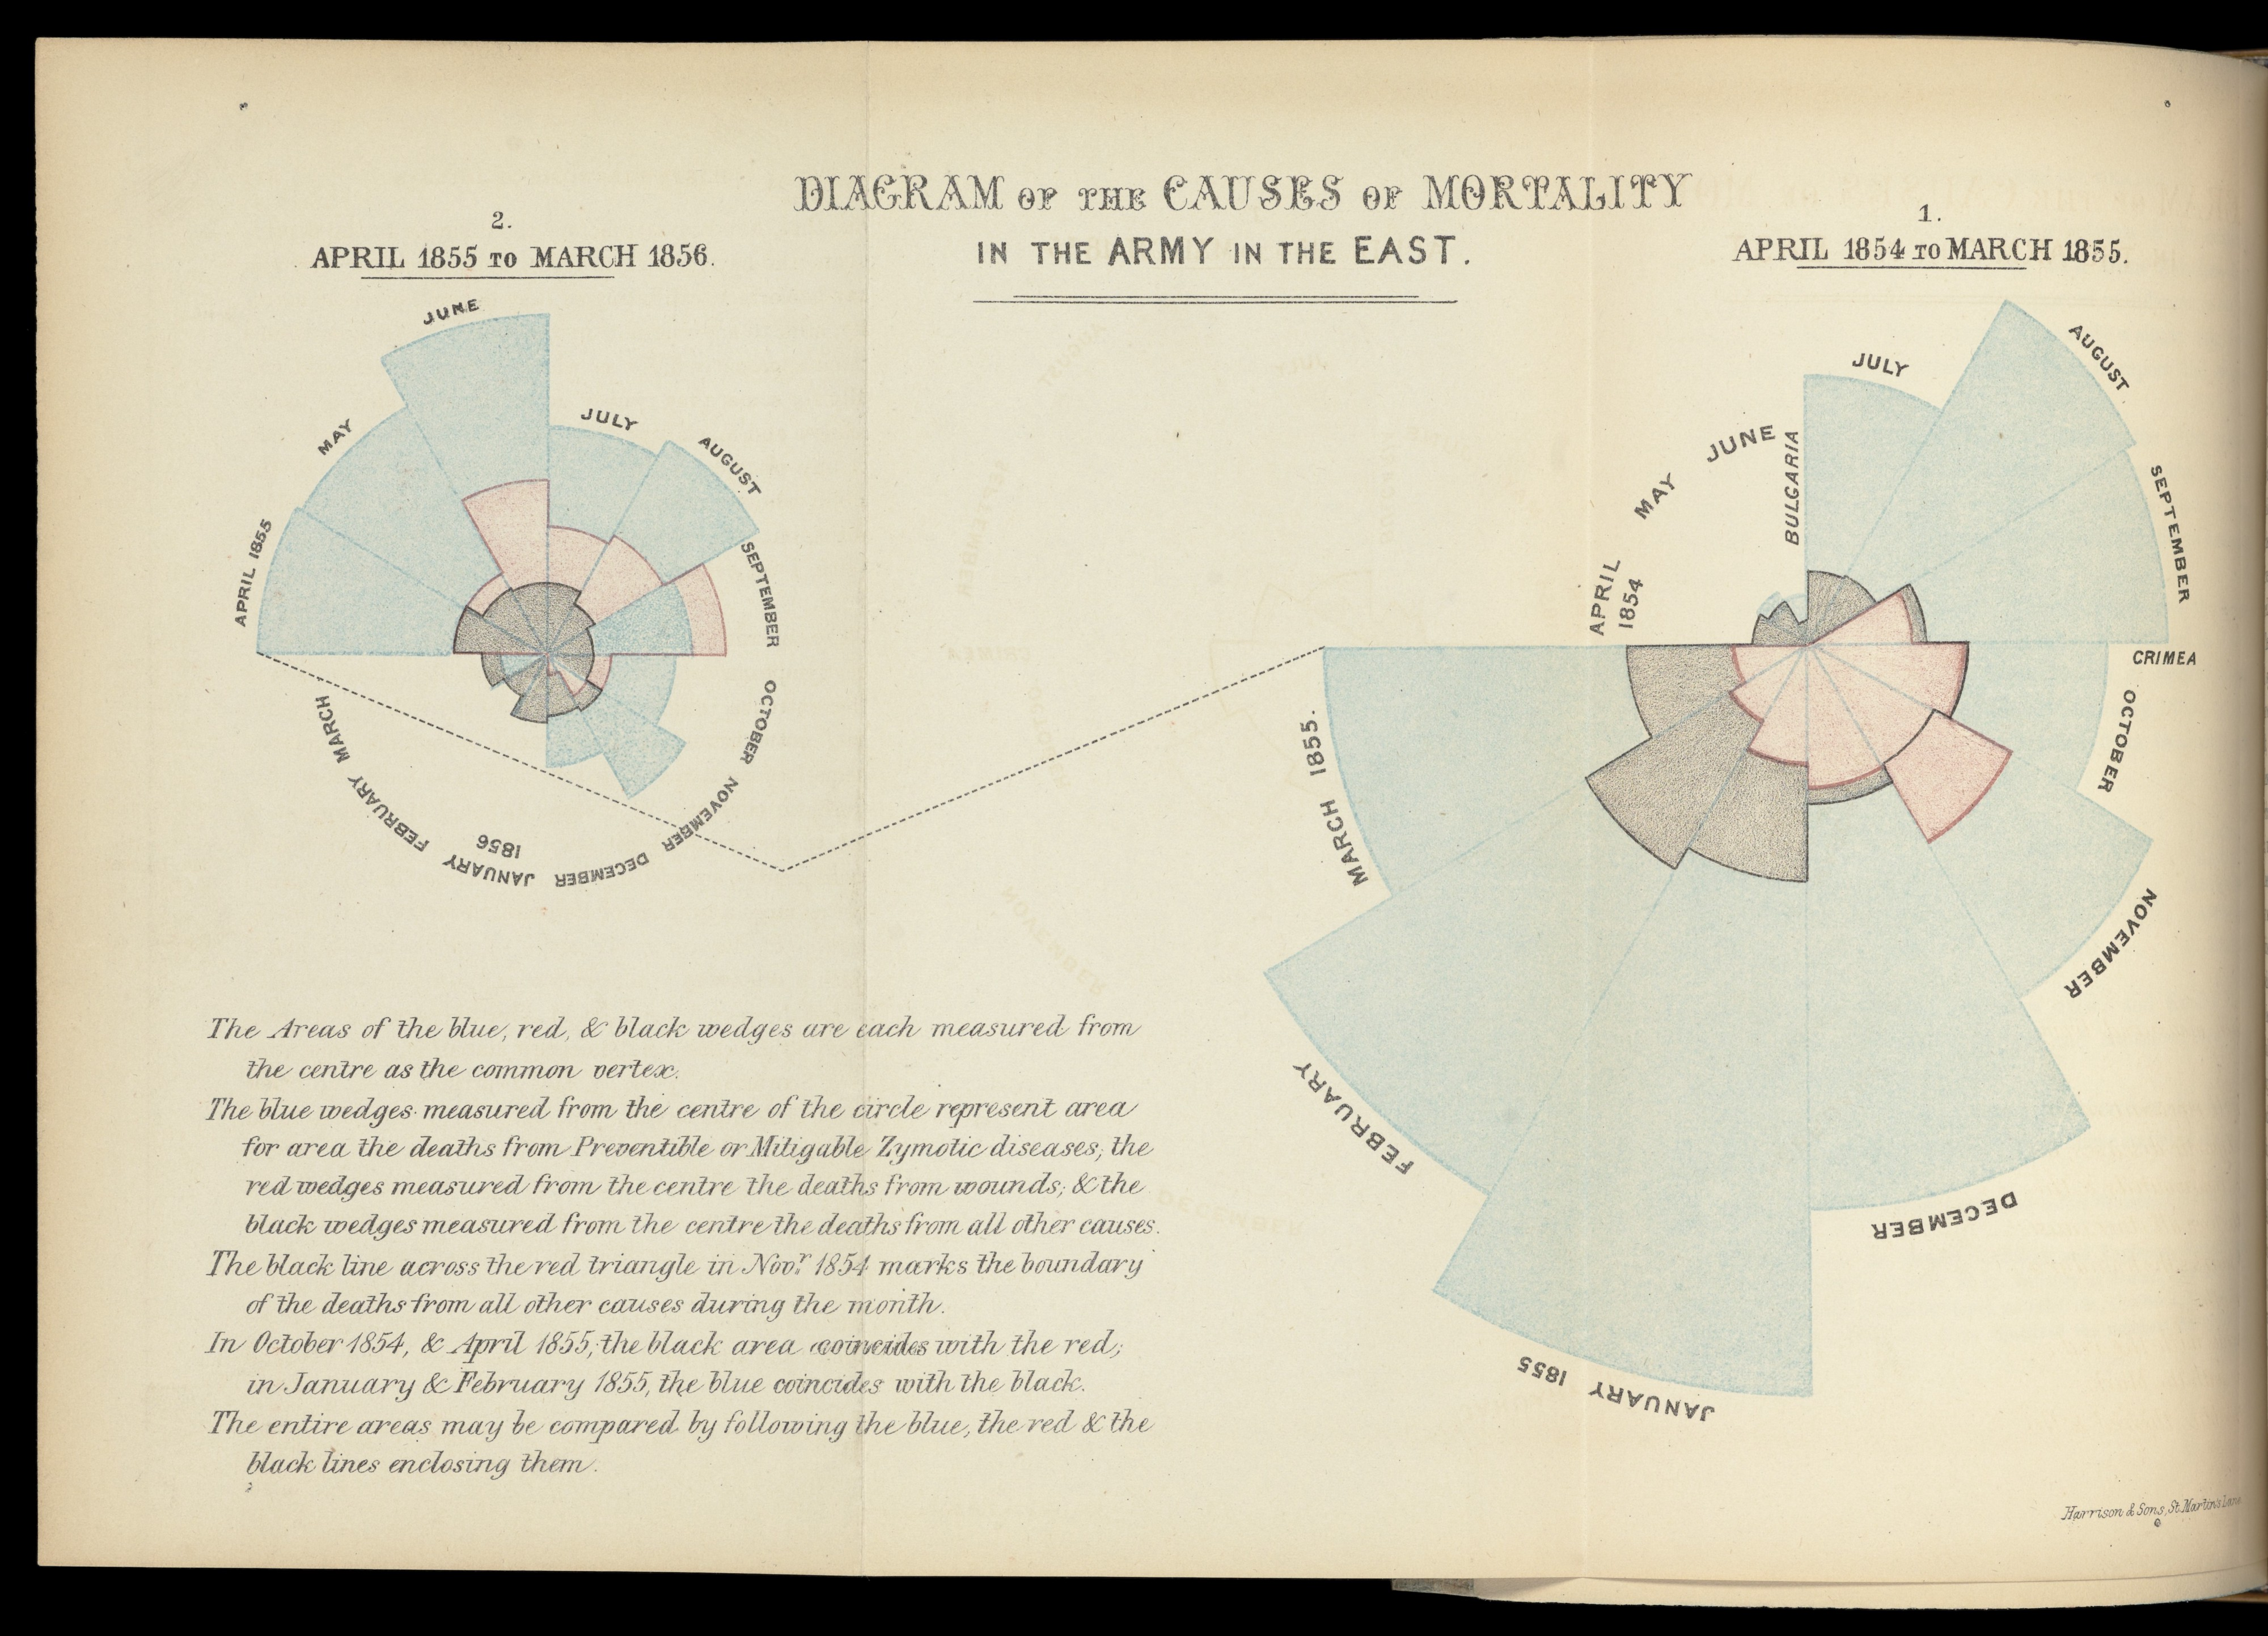 Florence Nightingale's Rose Diagram showing two charts, comparing the mortality rates of soliders before and after a sanitation drive.